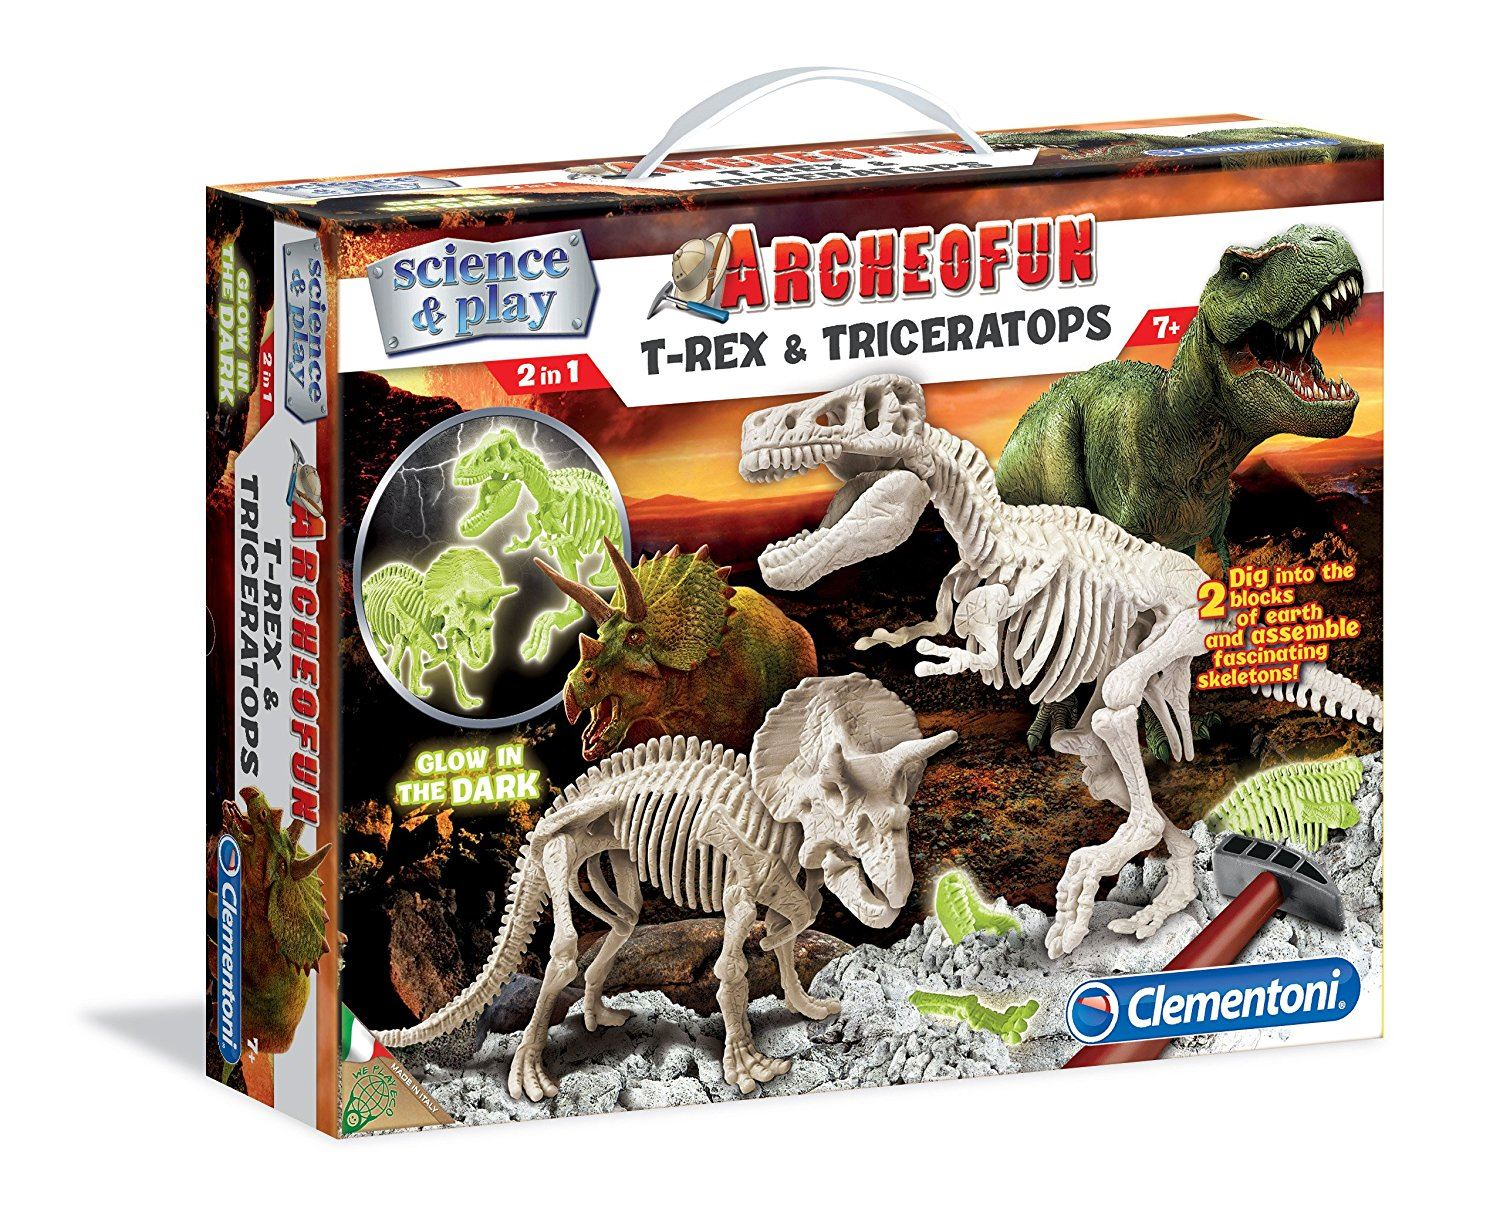 Archeofun T-rex And Triceratops (glow In The Dark) #61245